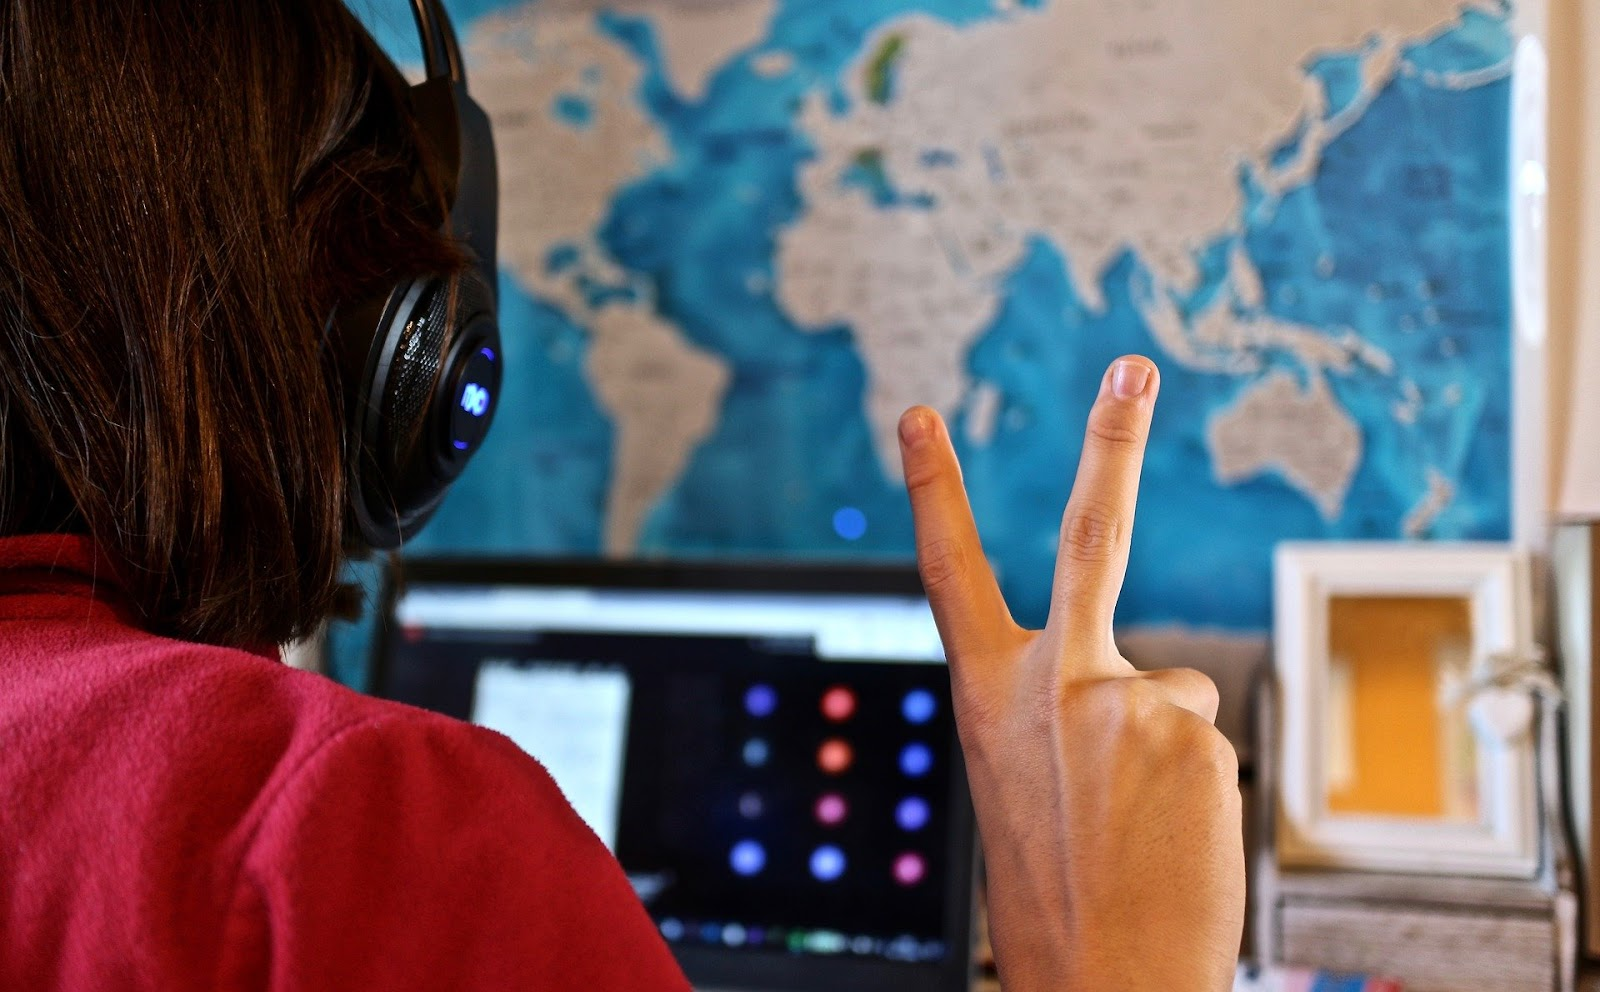 A person in front of a laptop, showing the peace sign